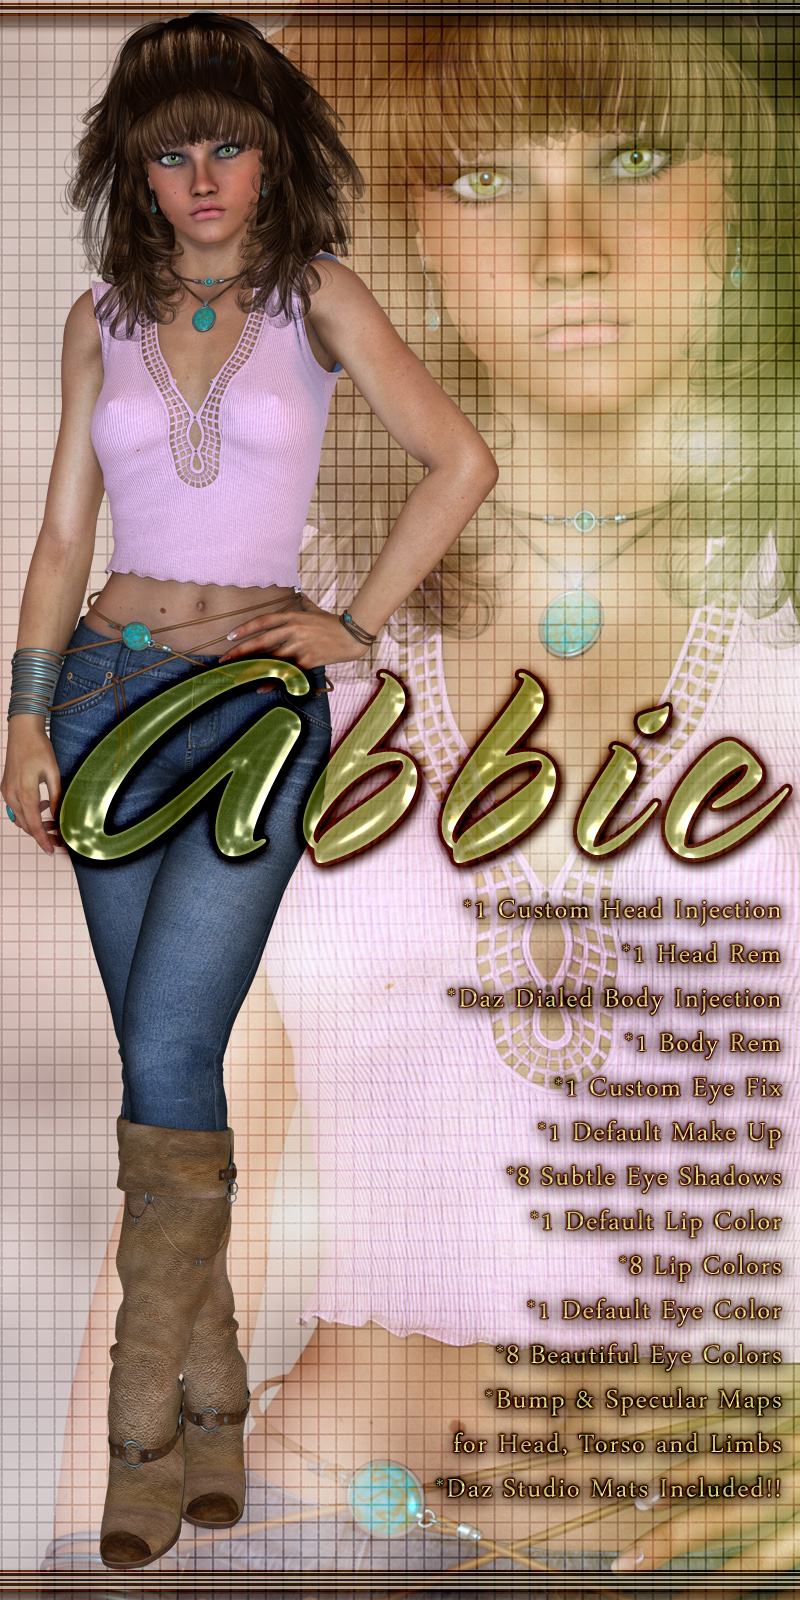 Abbie for V4